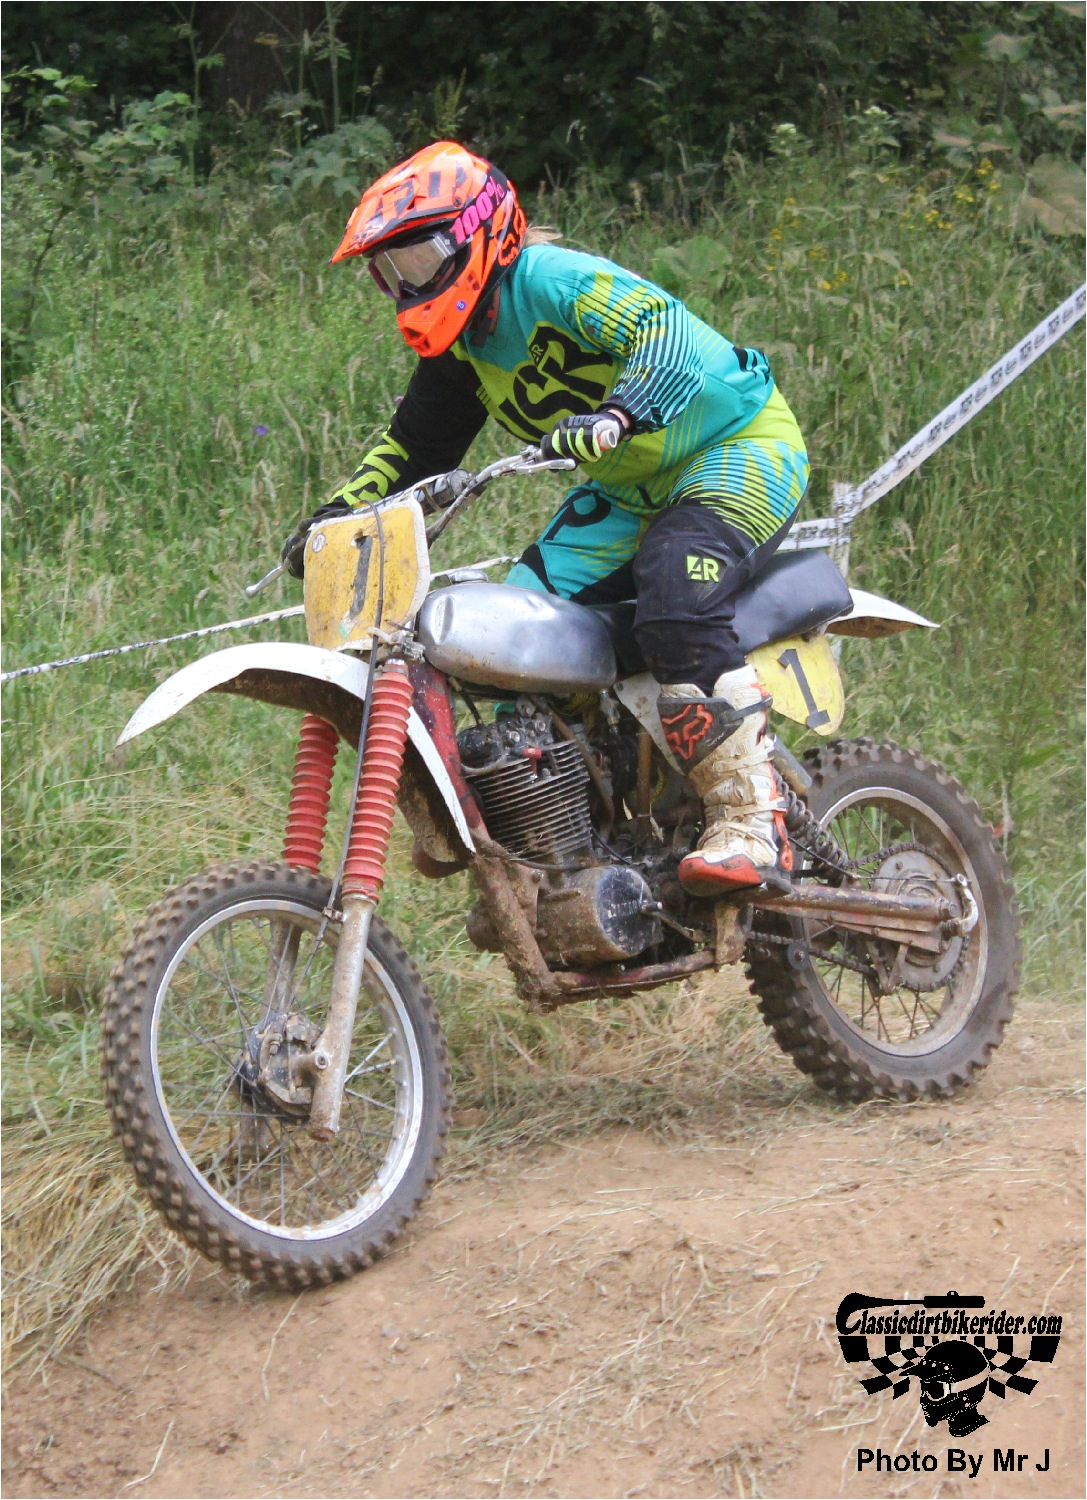 king of the castle 2015 photos Farleigh Castle twinshock motocross classicdirtbikerider.com 61